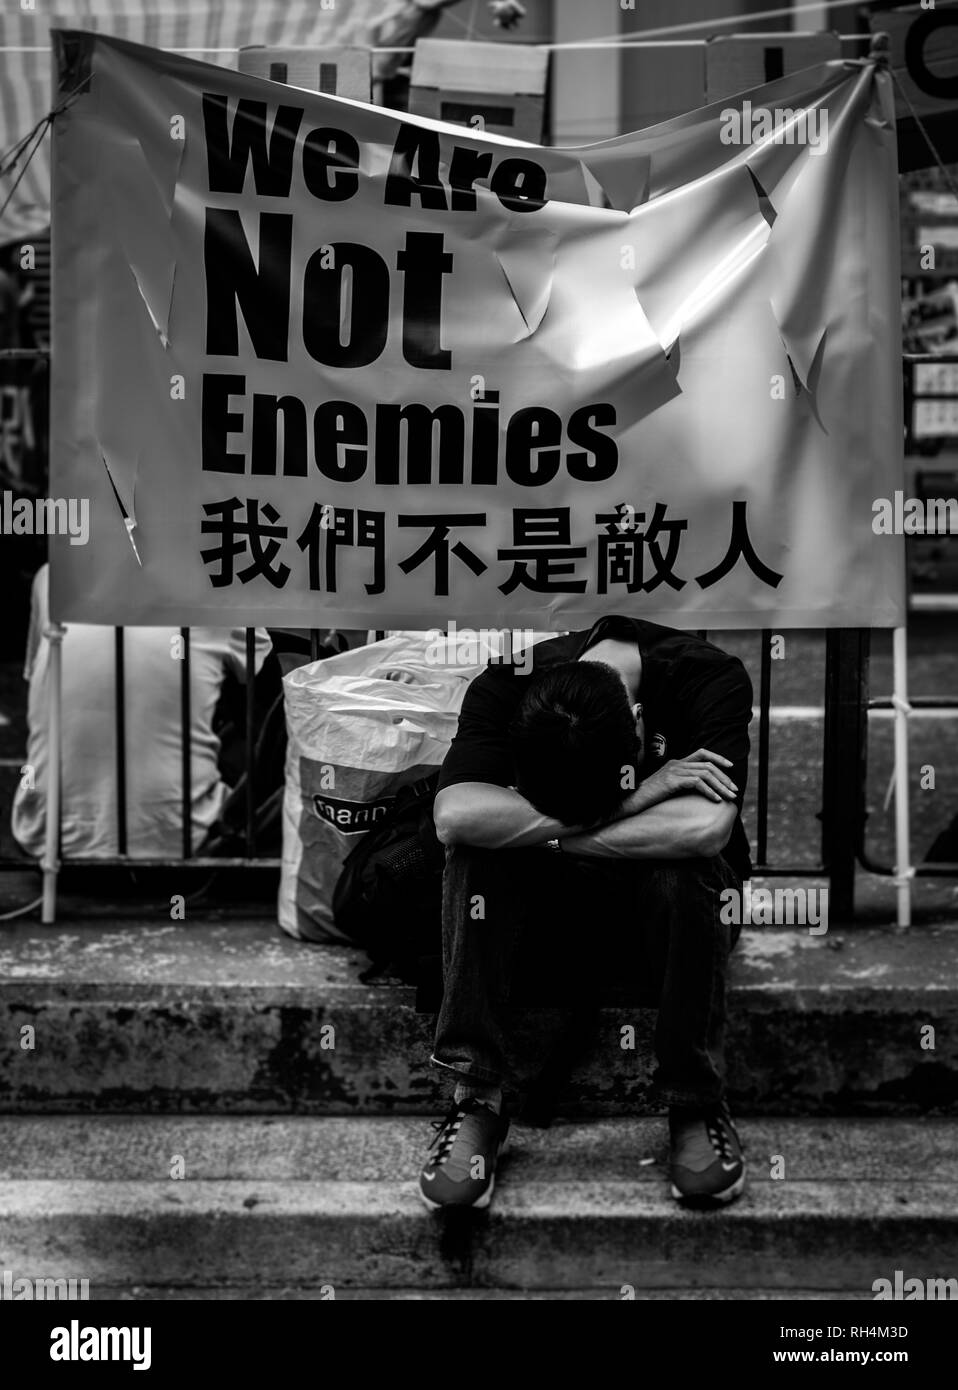 The Umbrella Movement was a political movement that emerged during the Hong Kong democracy protests of 2014. - Stock Image